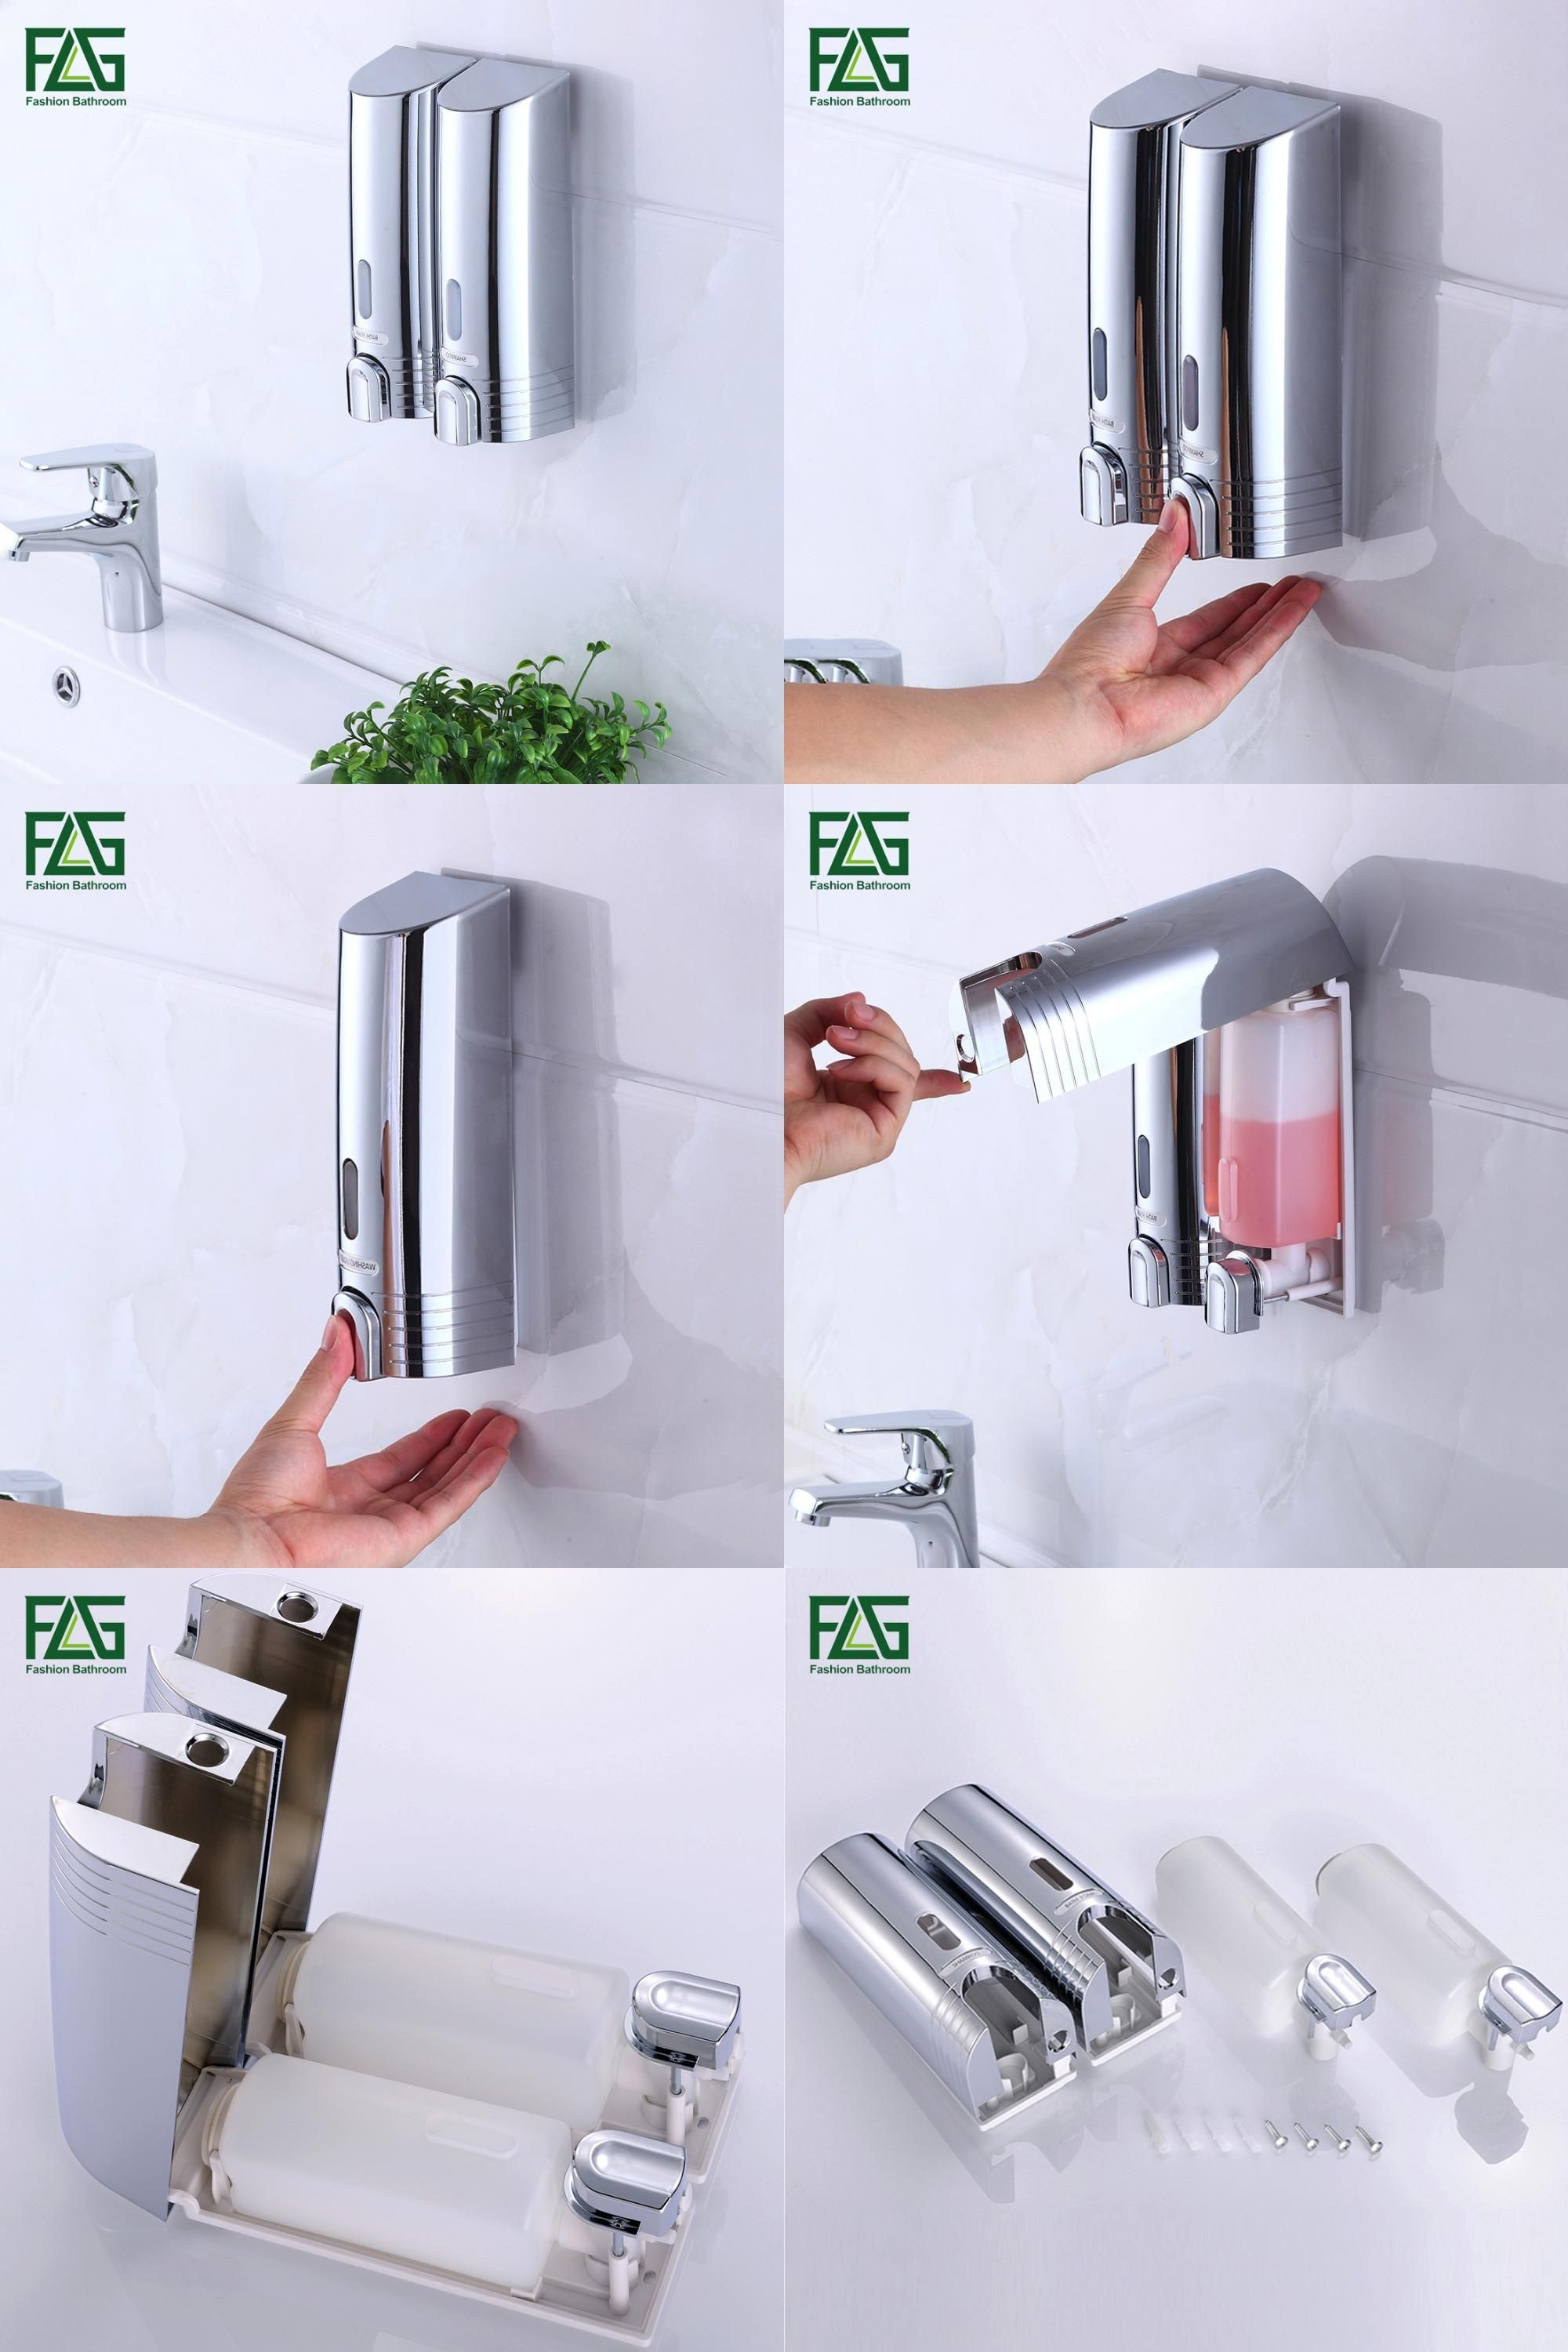 Visit to Buy] FLG Cheapest Double Soap Dispenser Wall Mounted Soap